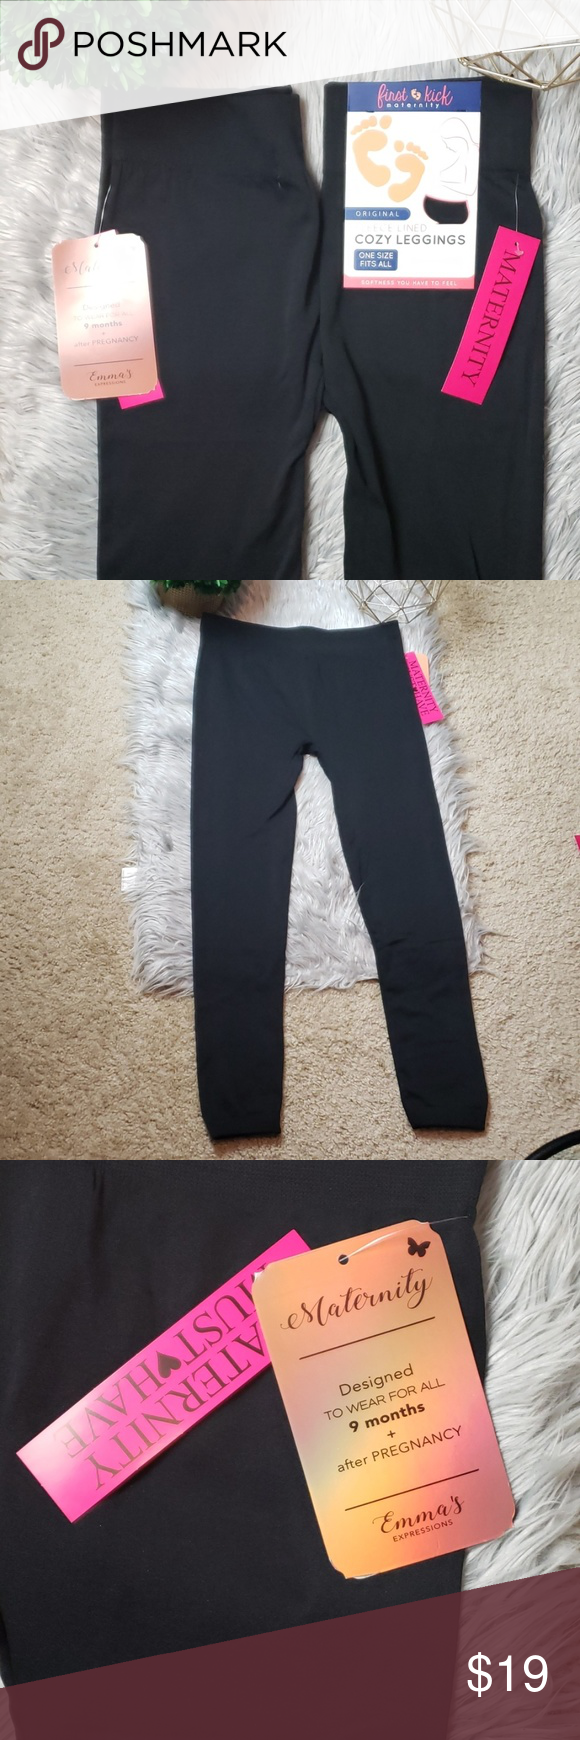 252c994ecd5f6 [2] Fleece Lined Cozy Maternity Leggings First Kick | One Size Fits All |  92% Polyester 8% Spandex | Waist 13.5